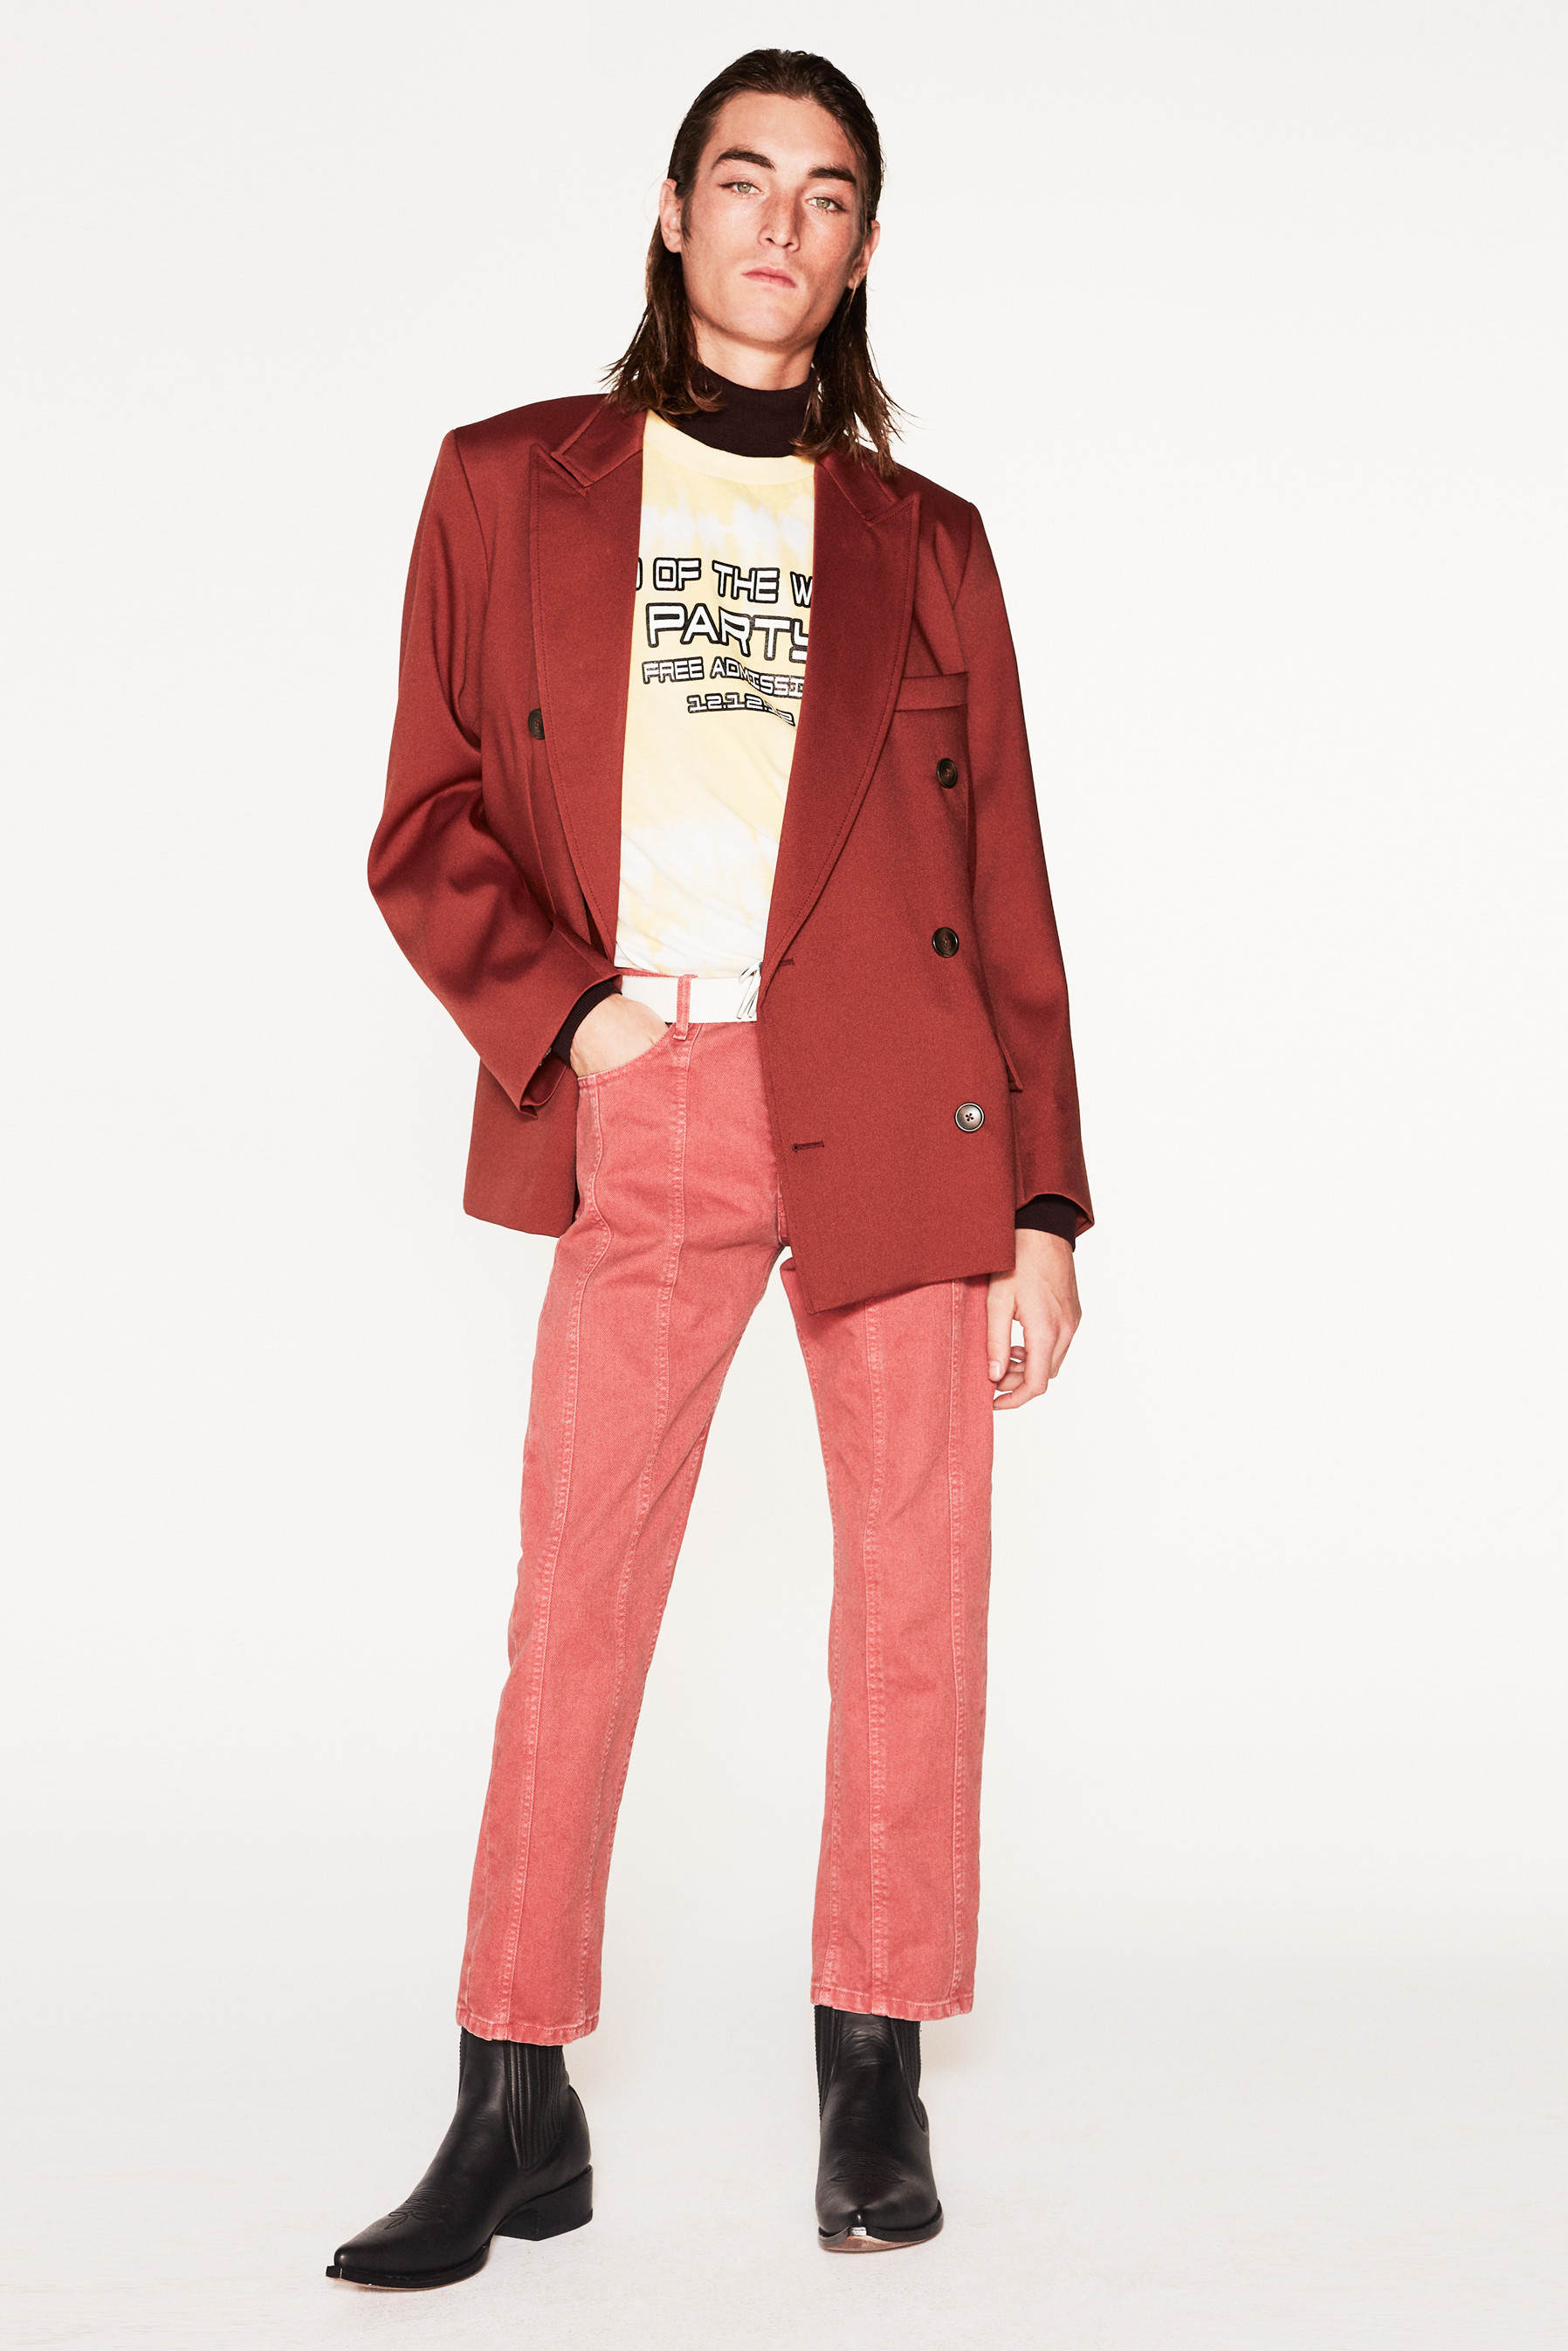 527a2d6be15c8 one-culture-collection-automne-hiver-2019-lookbook-mode-folkr-3 ...